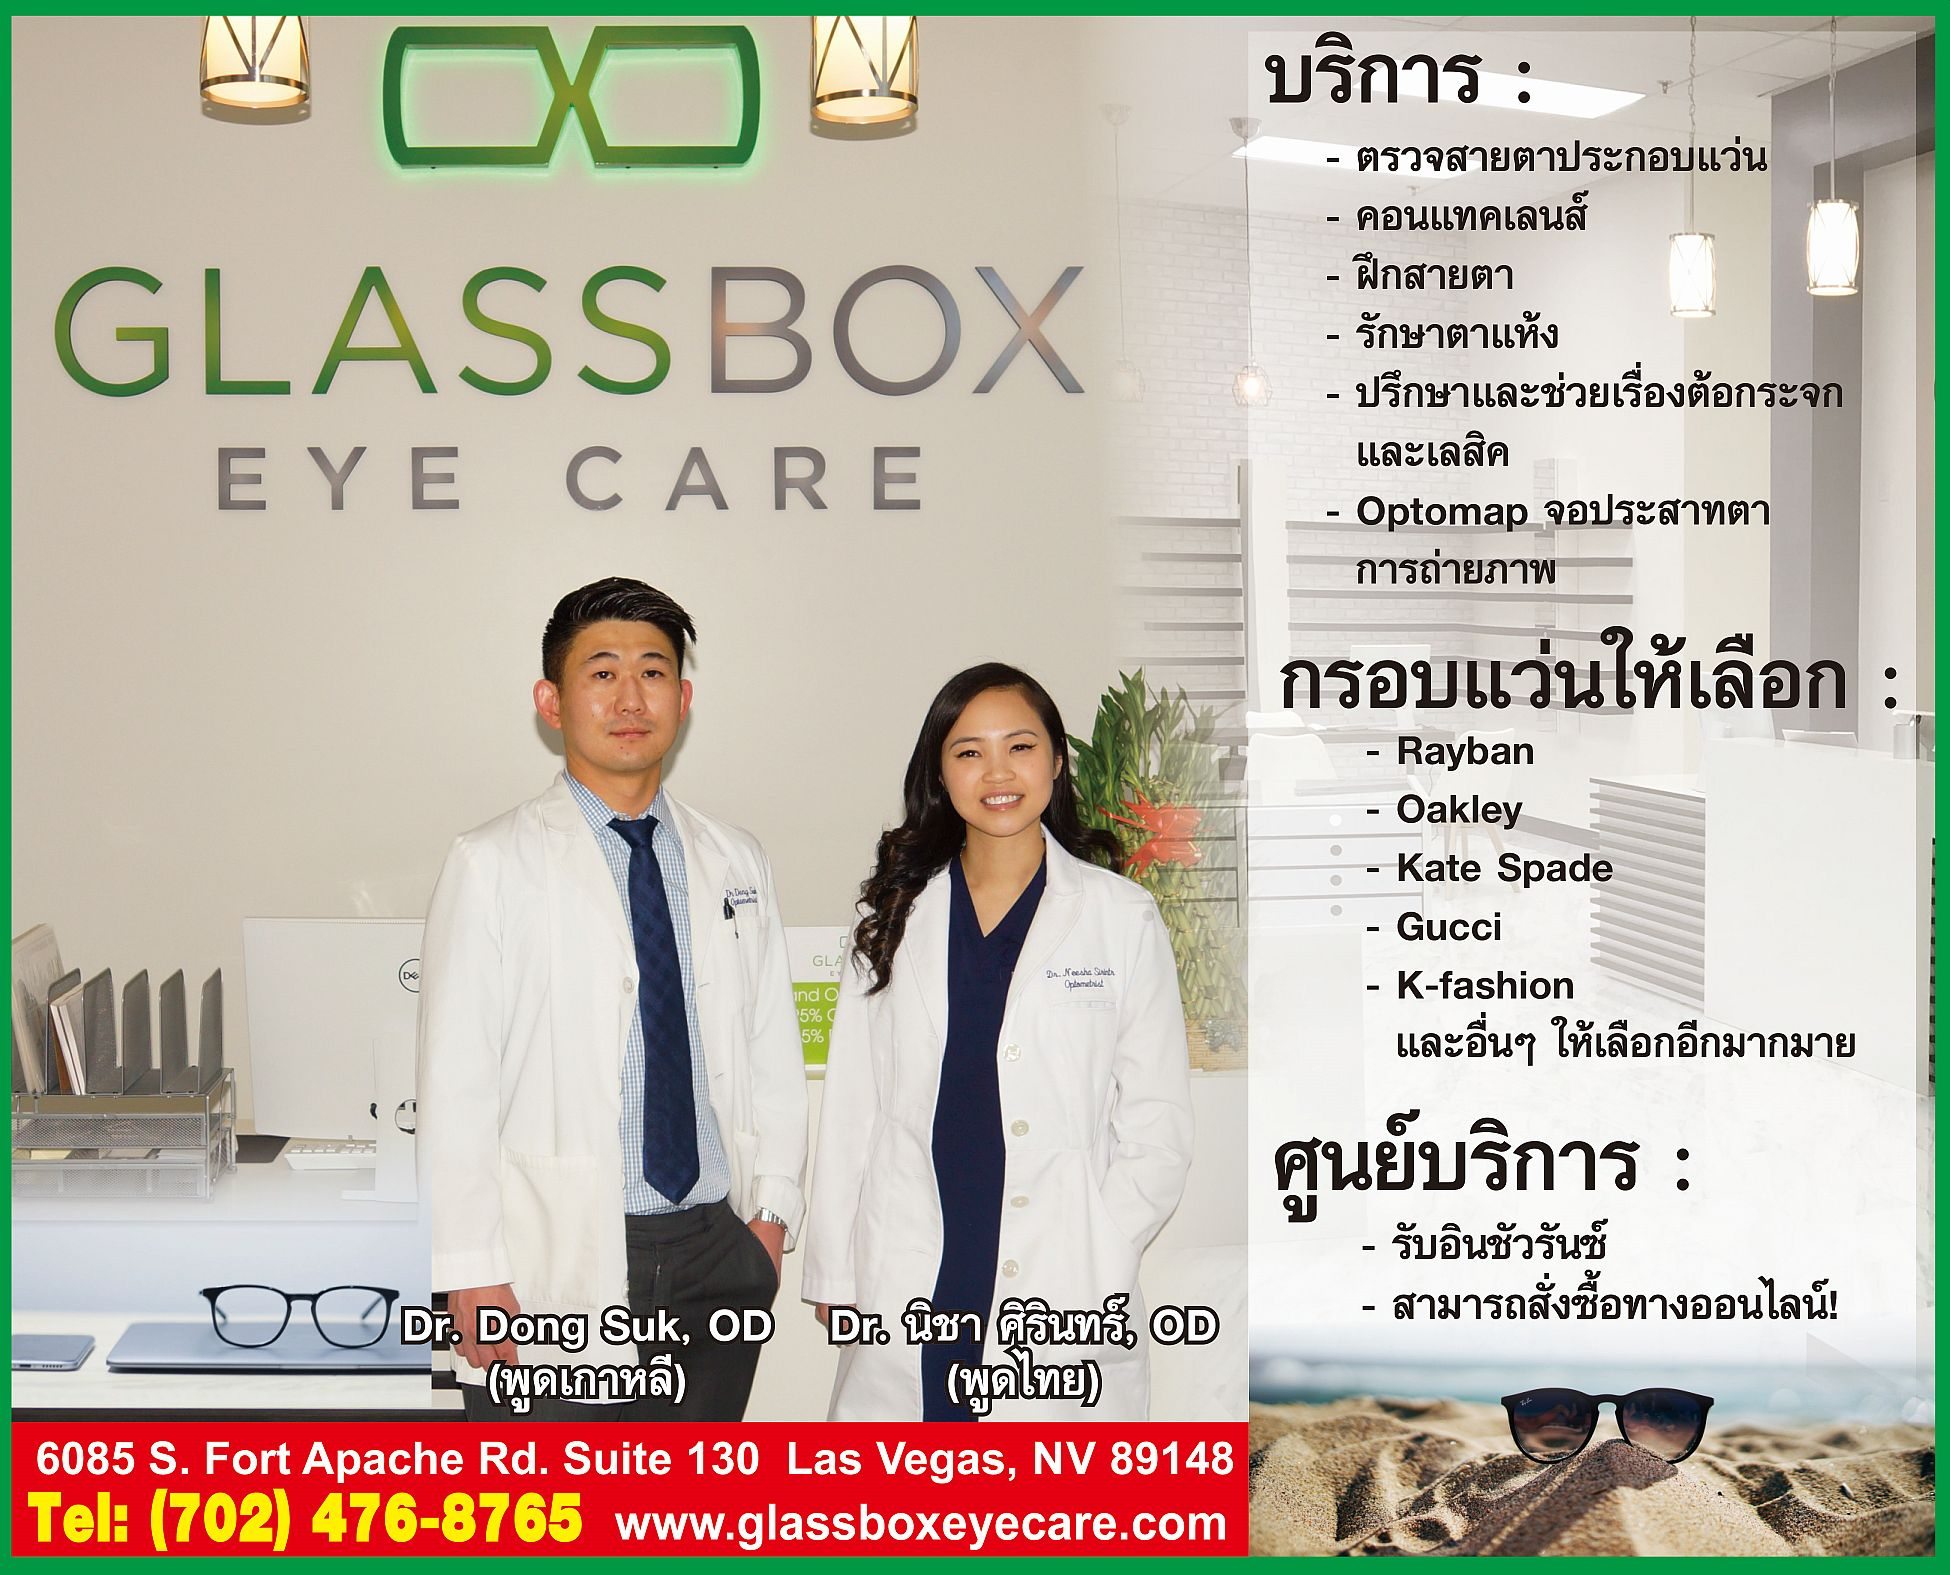 GlassBox Eye Care